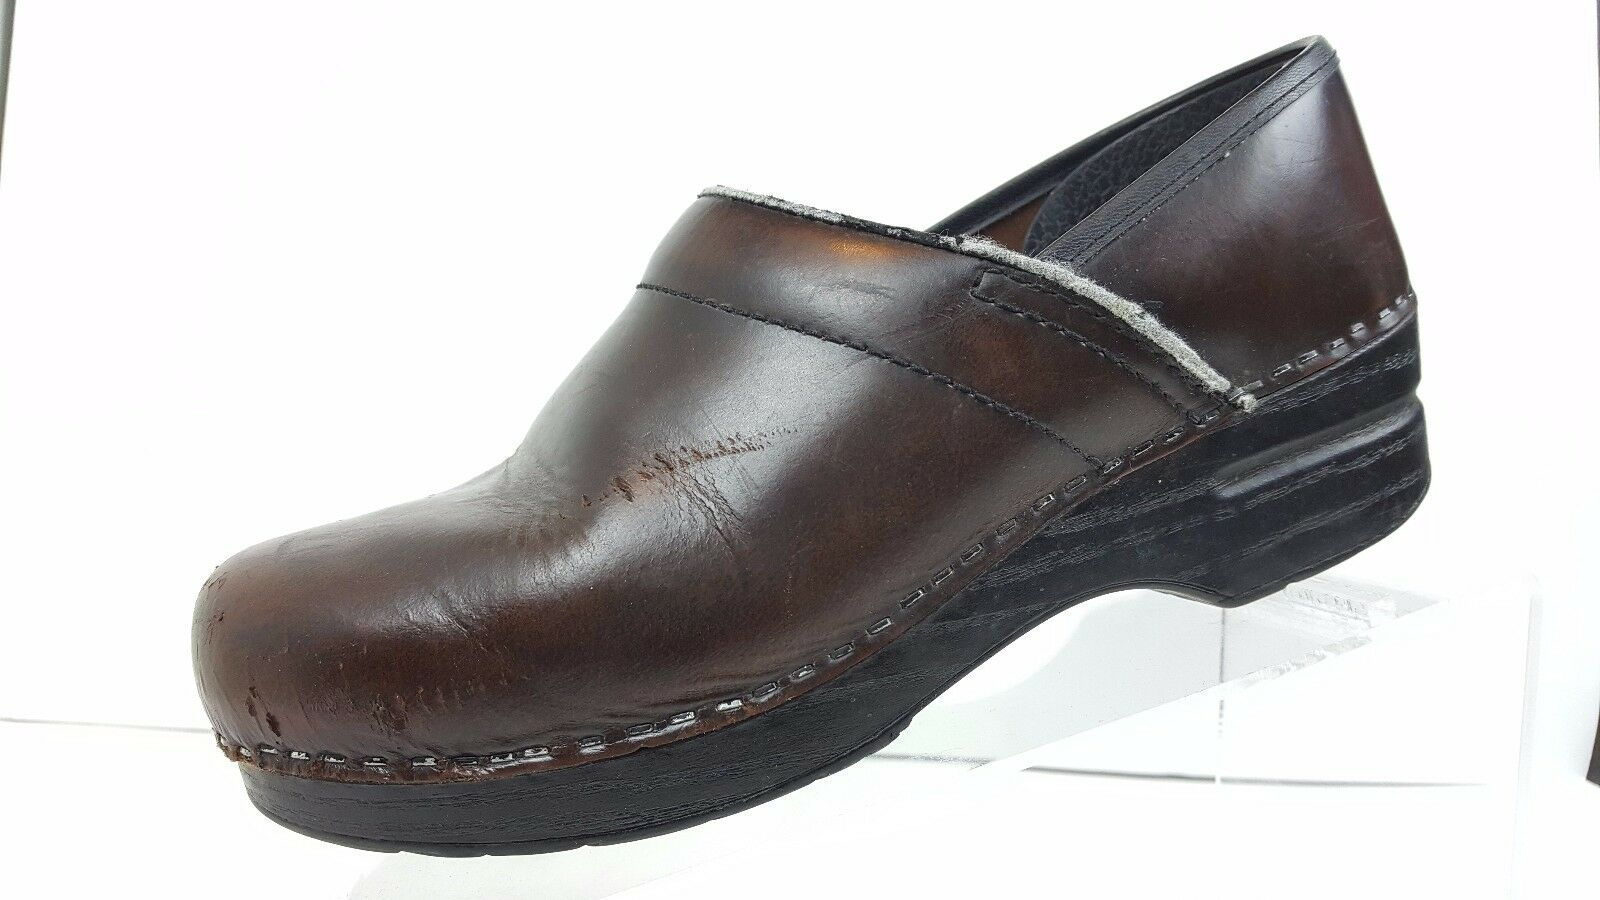 Dansko Brown Leather Clogs Women's US 8.5-9  Some Some Some Scuffing 190591